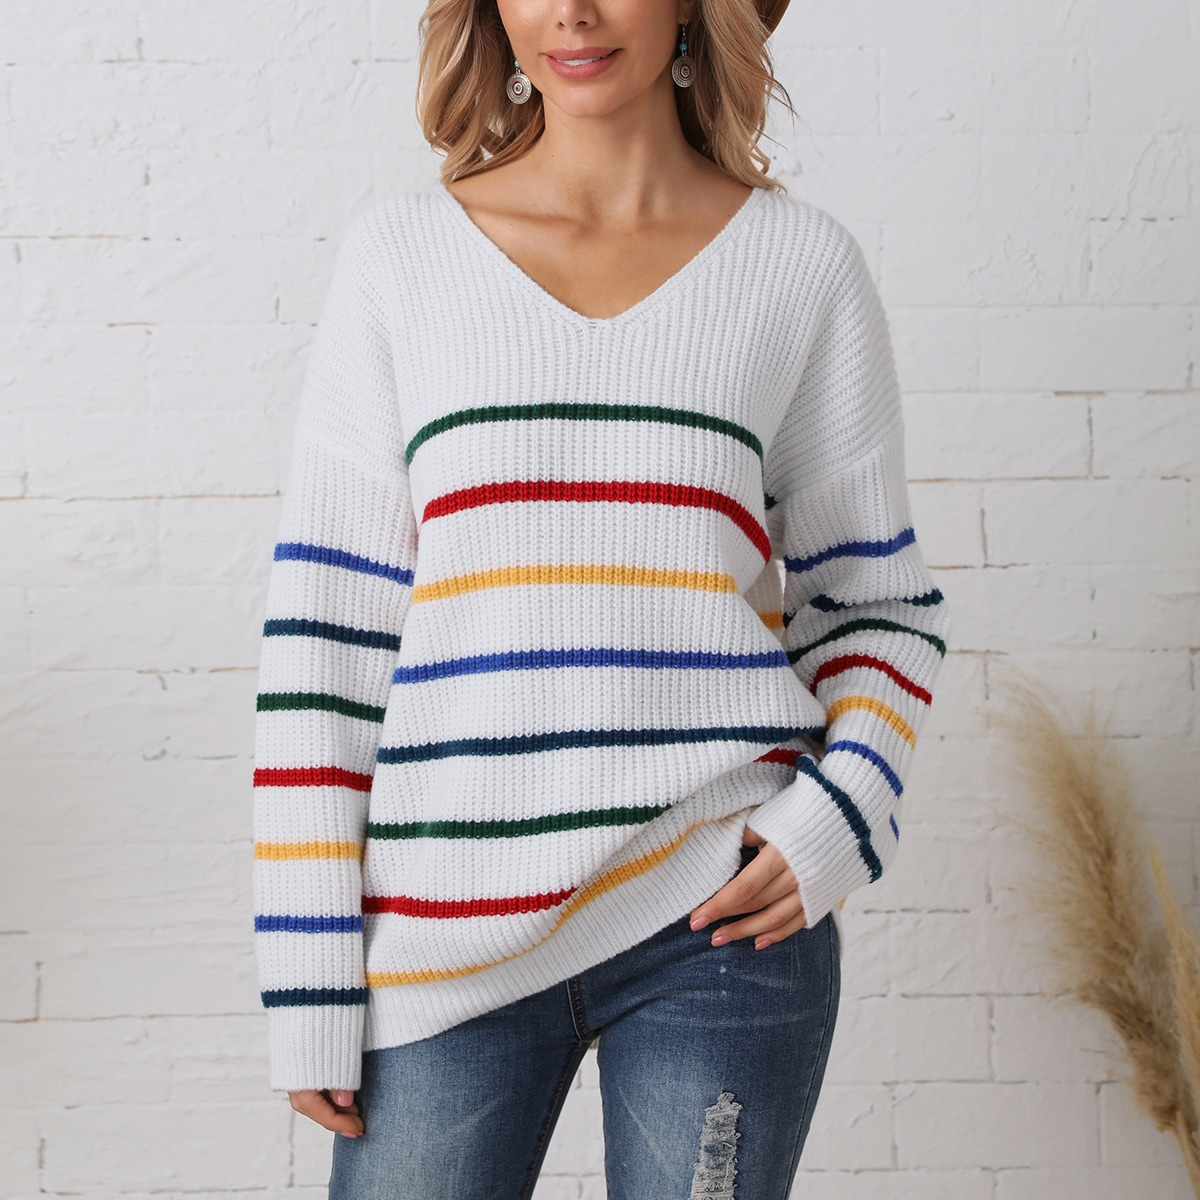 Striped Pattern V Neck Drop Shoulder Sweater, SHEIN  - buy with discount